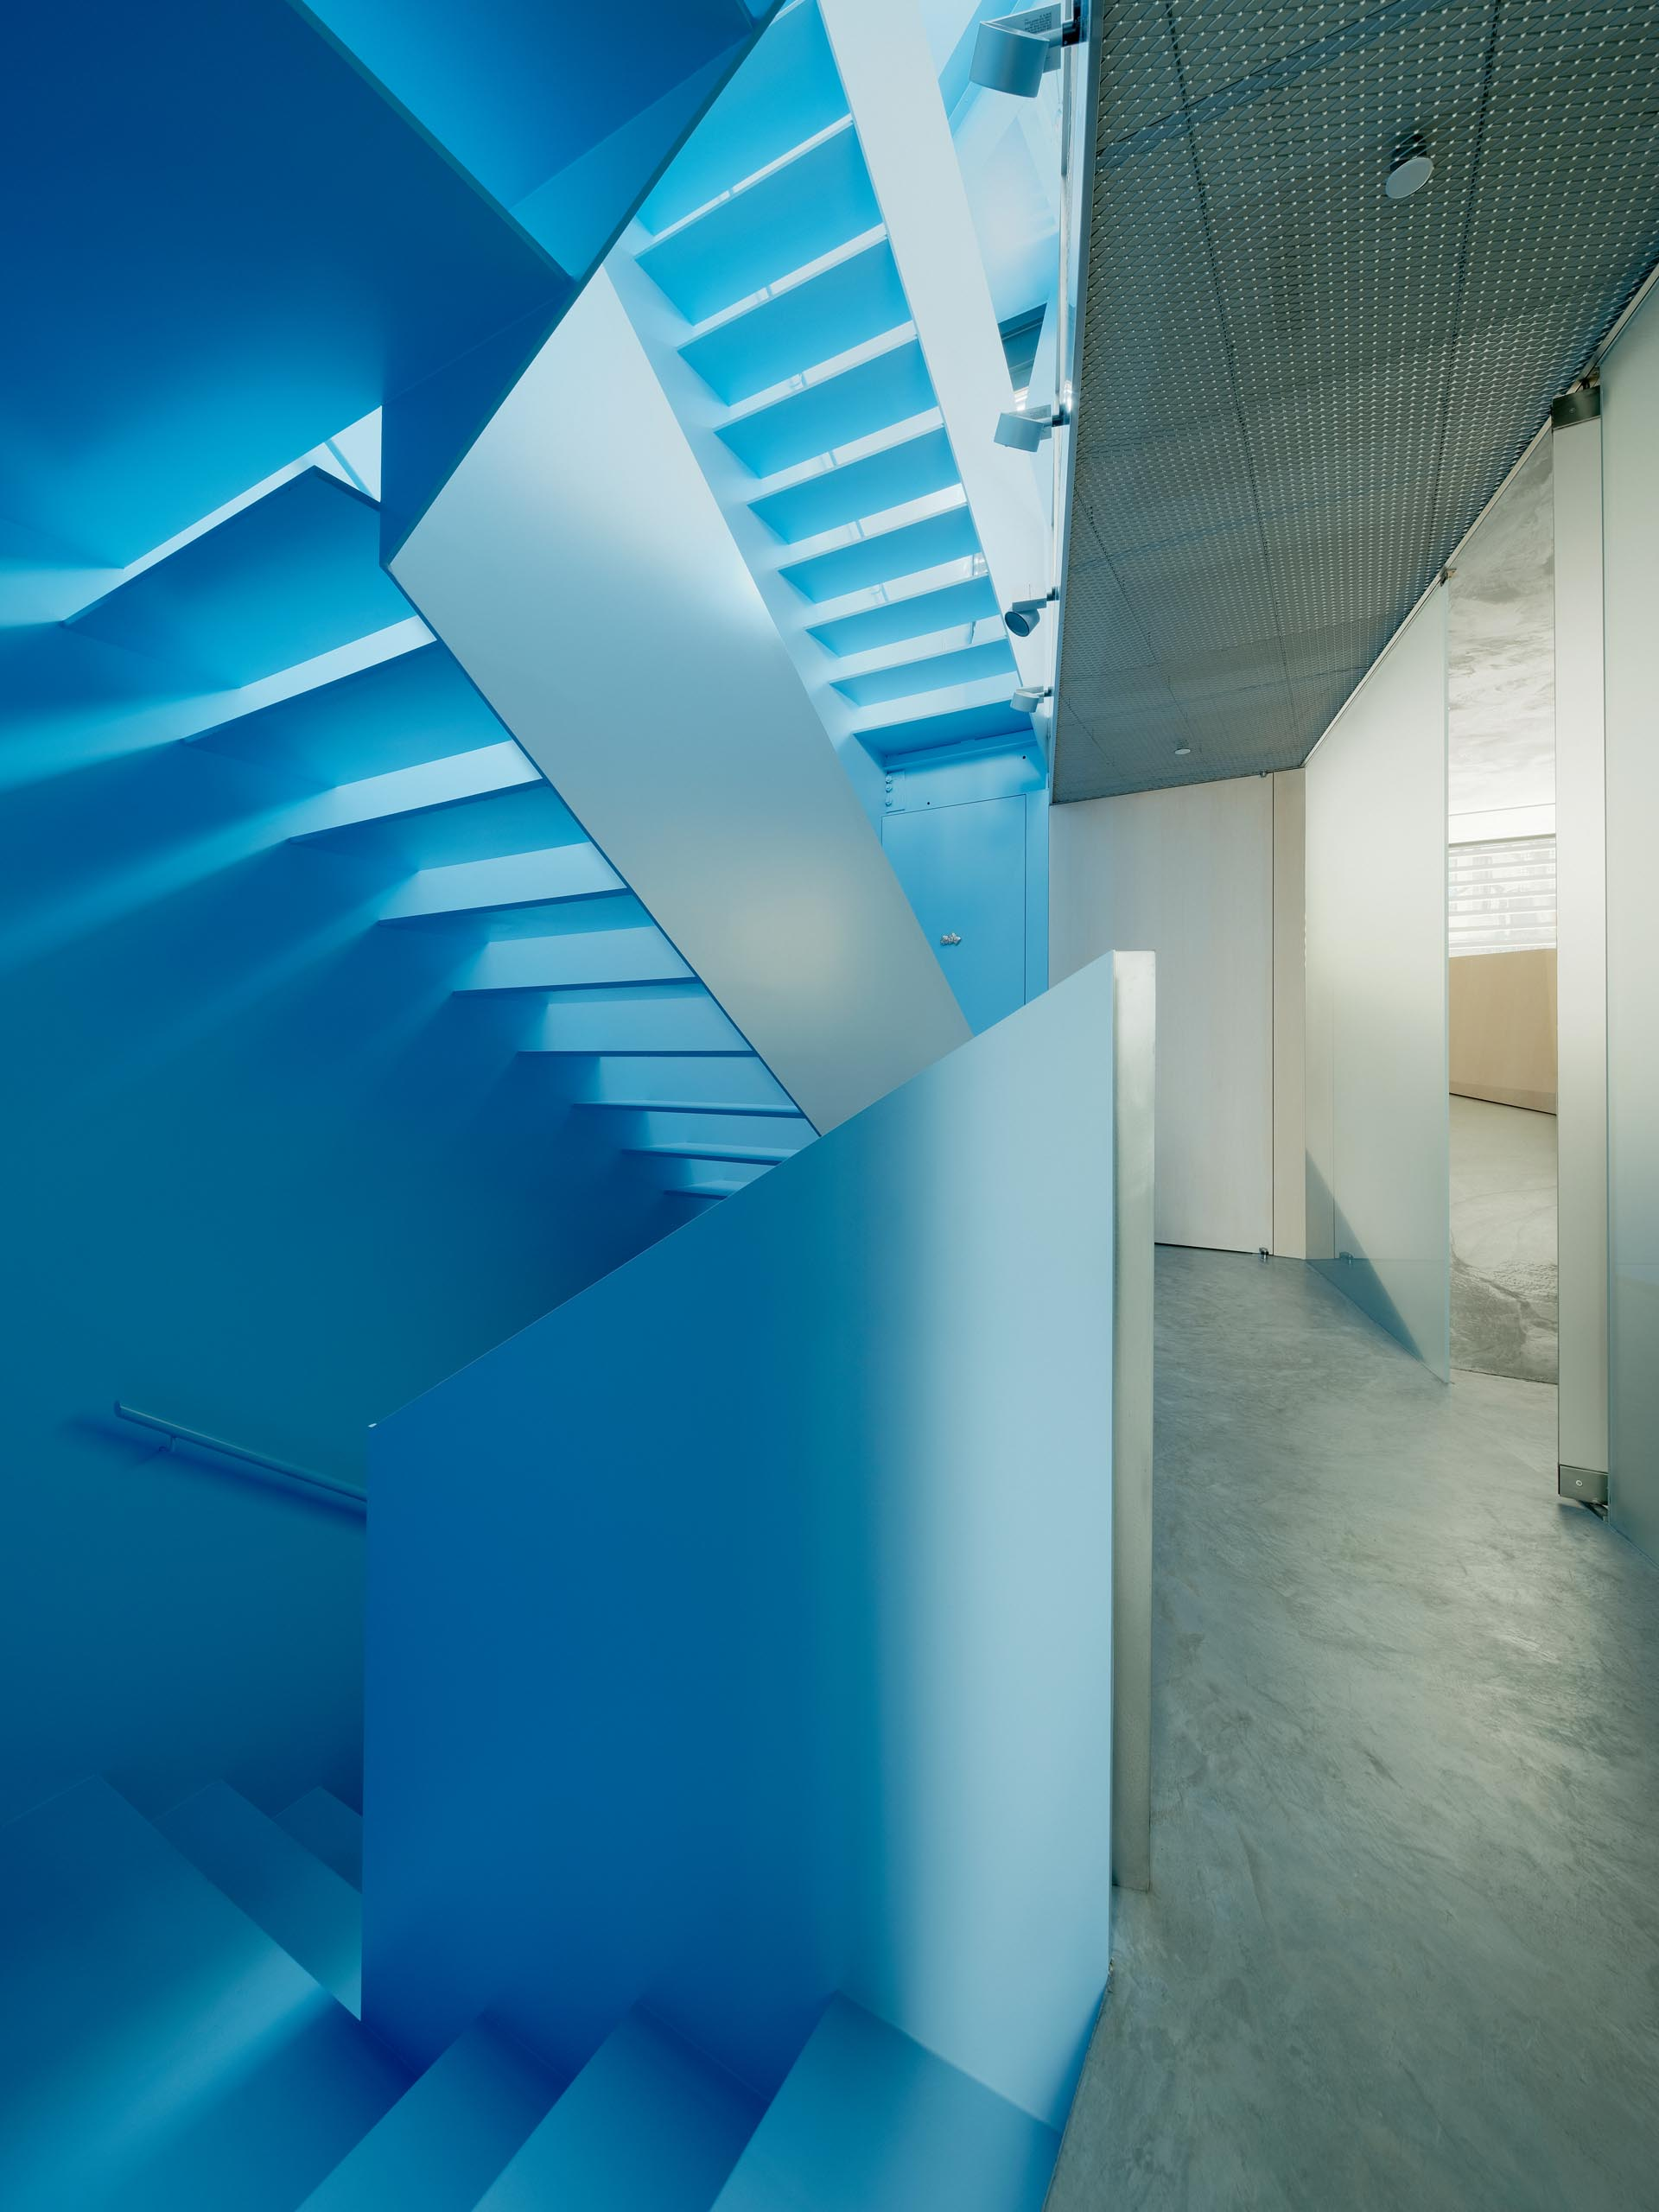 A modern house interior with a pastel blue staircase.